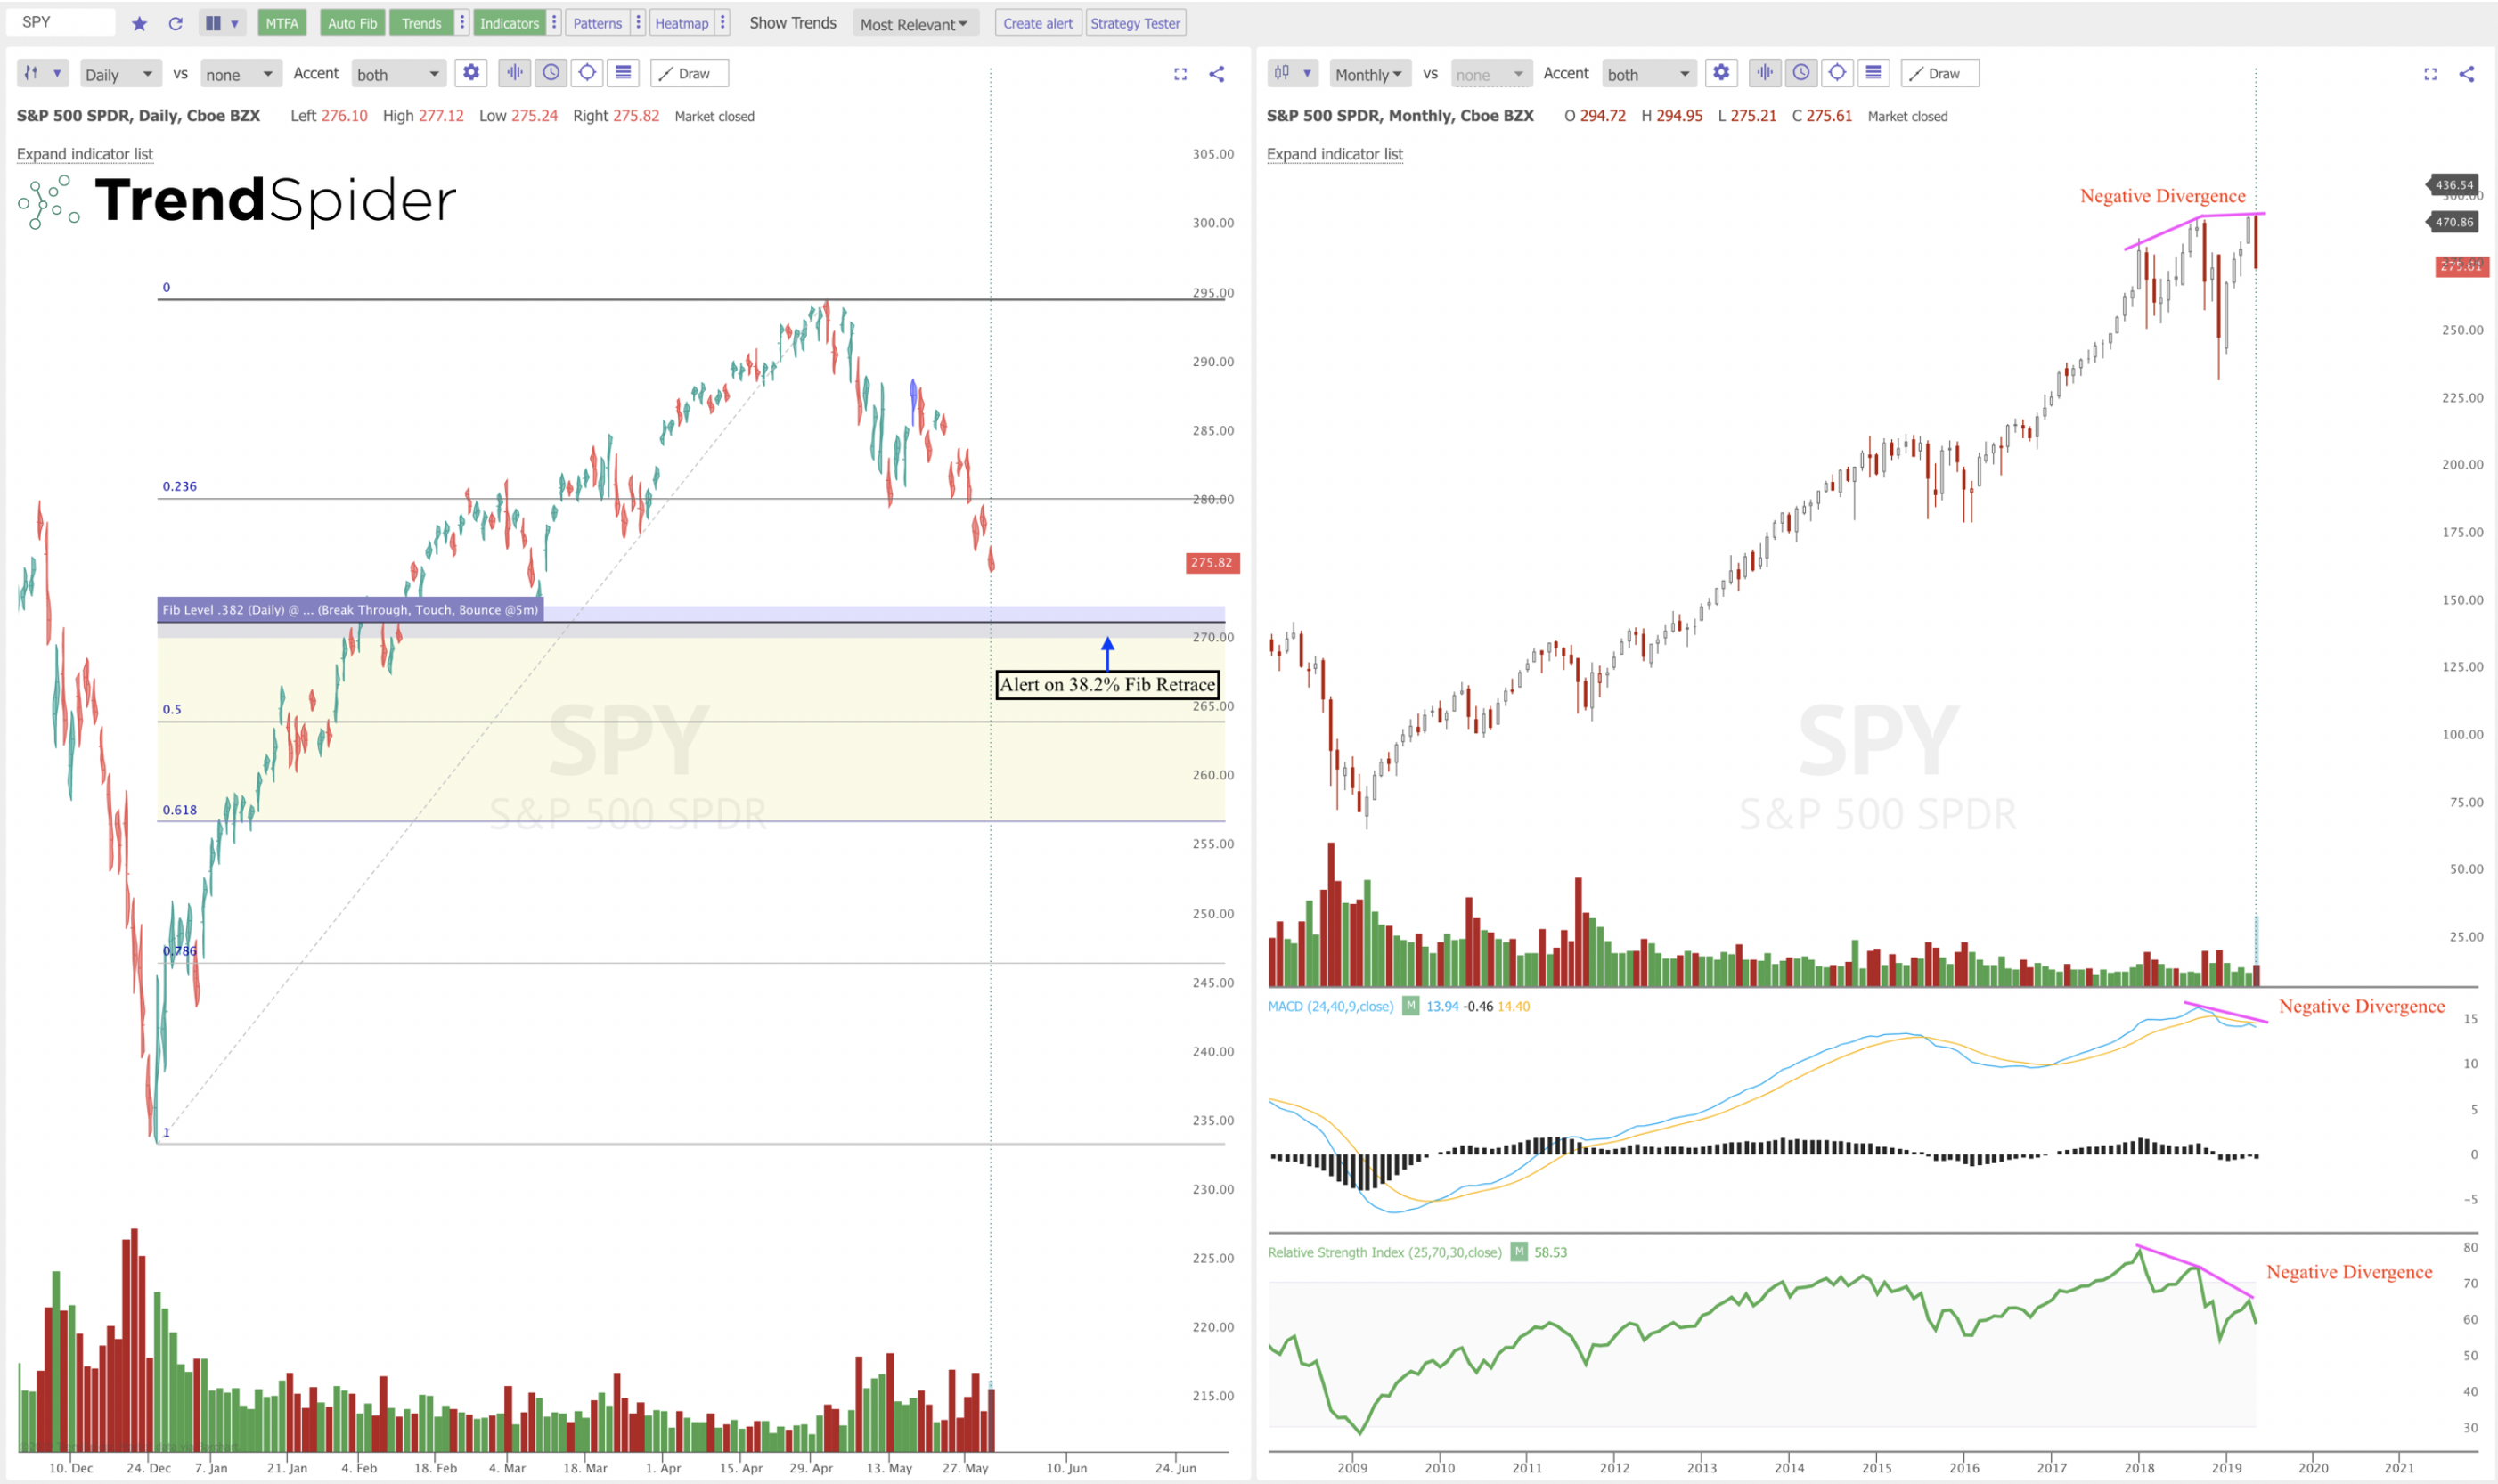 The Bullish Bitcoin Chart vs. the Bearish $SPY Chart